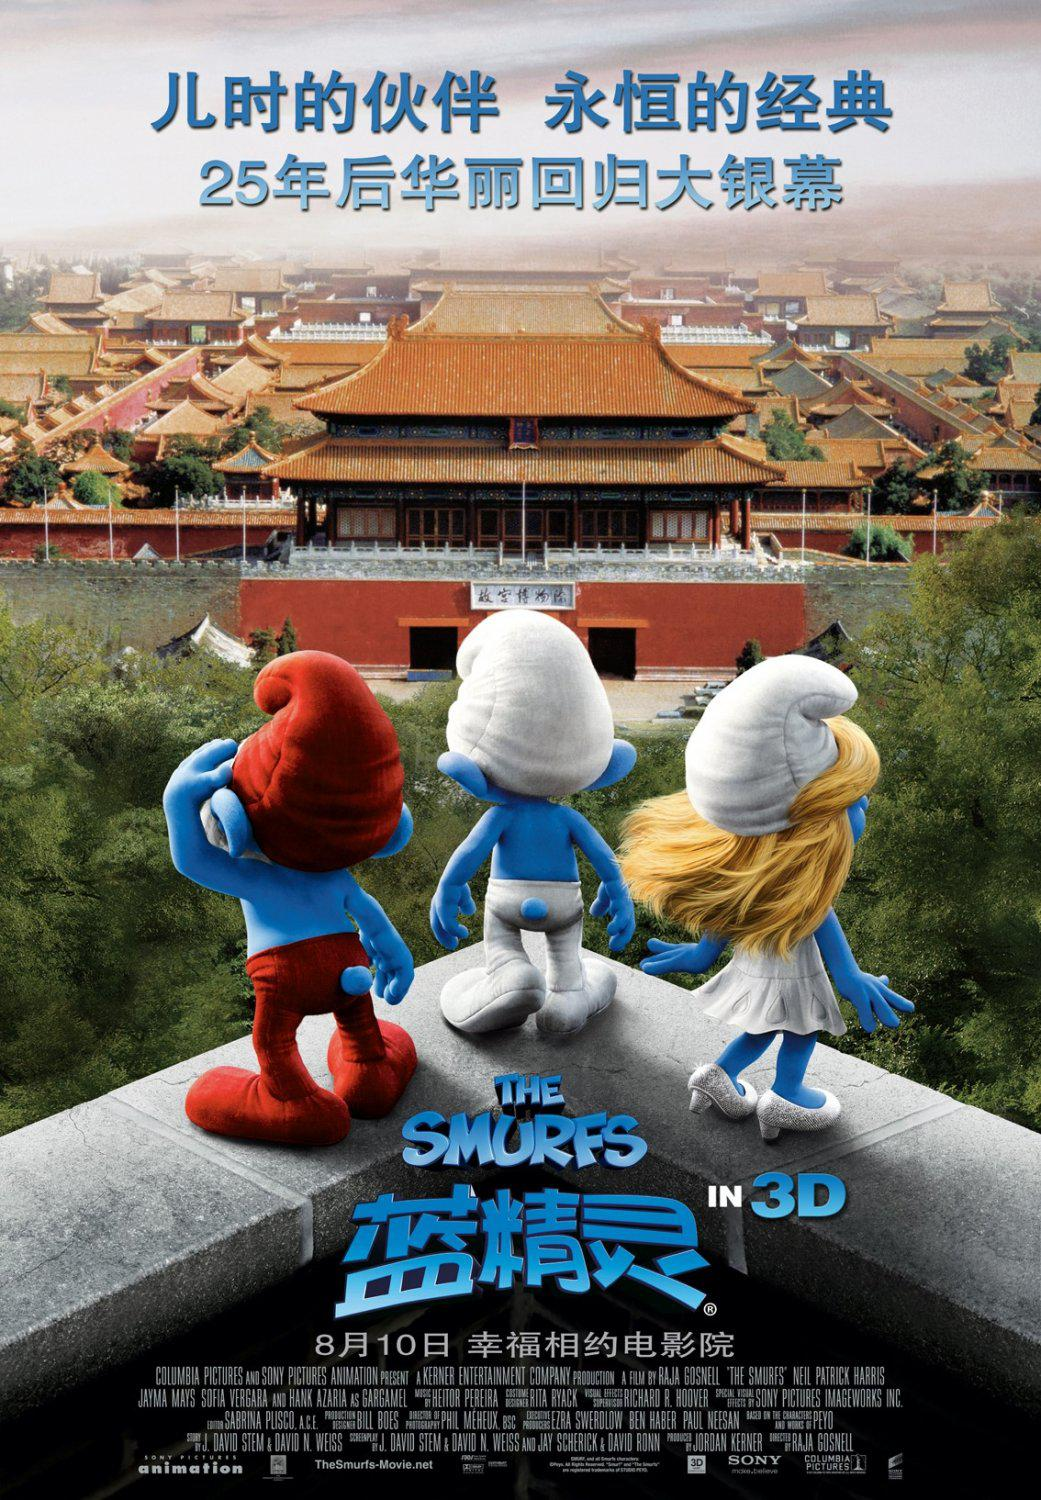 Film I Puffi in 3D - Movie Smurfs in 3D - poster China